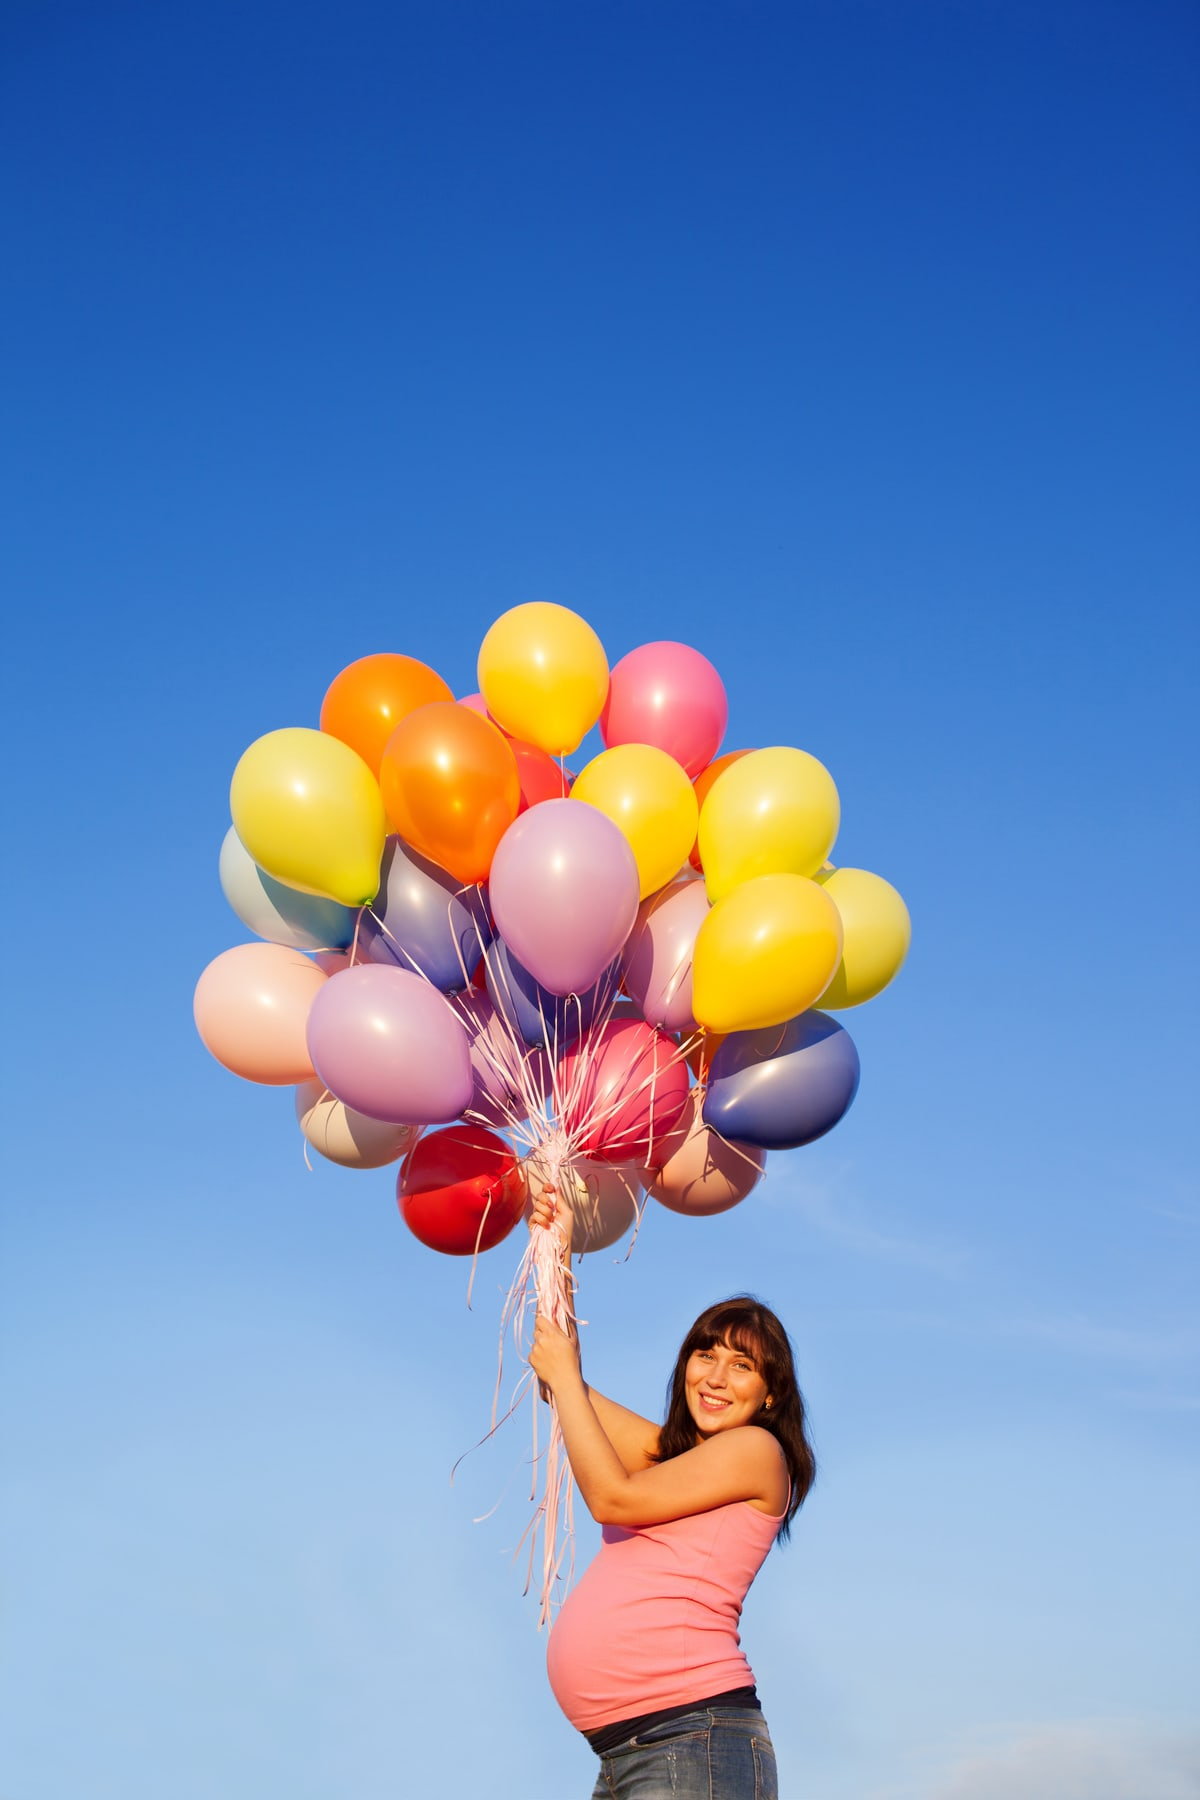 Beautiful happy young pregnant woman girl outdoors with balloons on sky background with her hands up